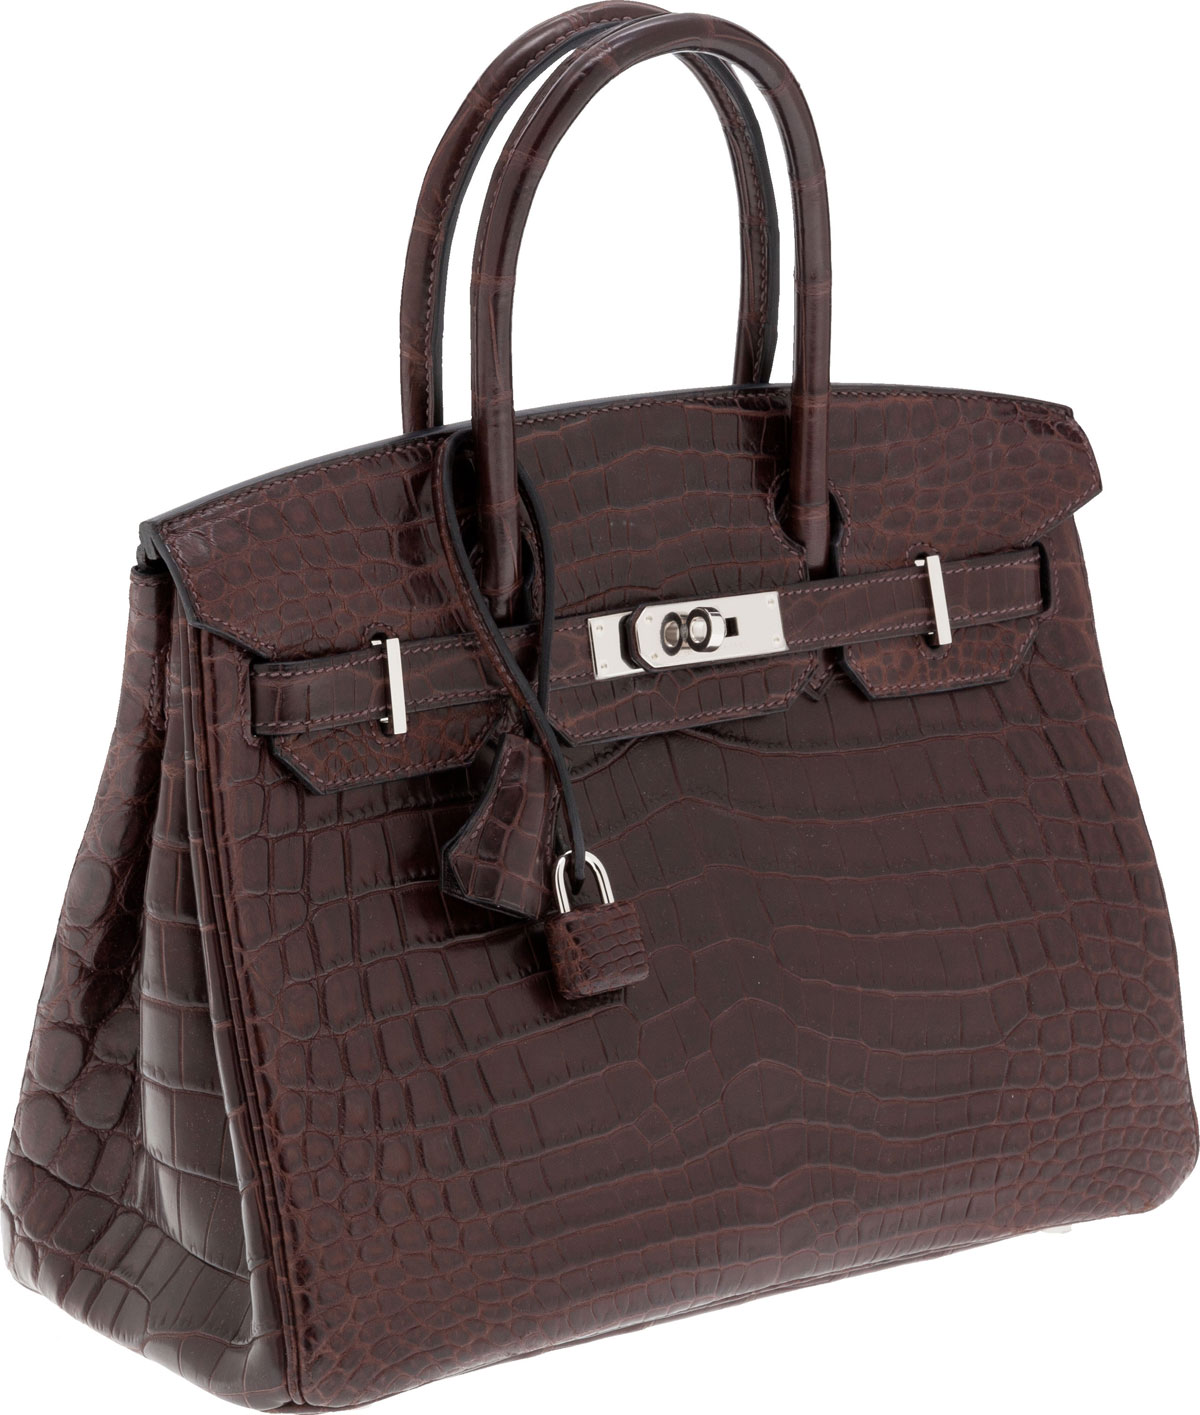 top 10 most expensive purses in the world most costly